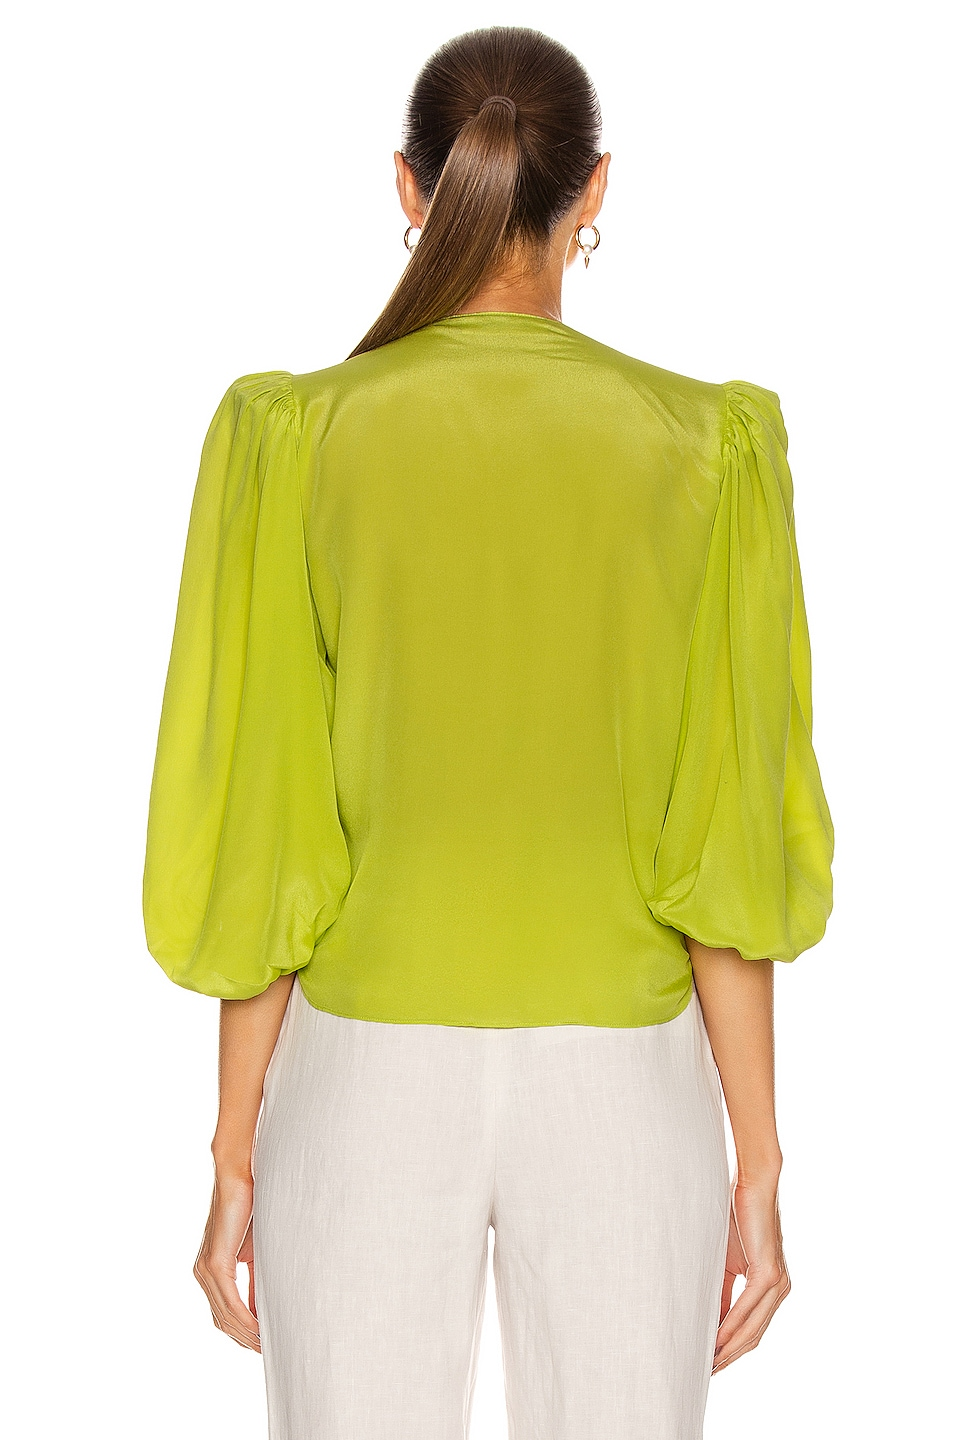 Image 3 of ADRIANA DEGREAS Solid Shirt With Voluminous Sleeves in Yellow